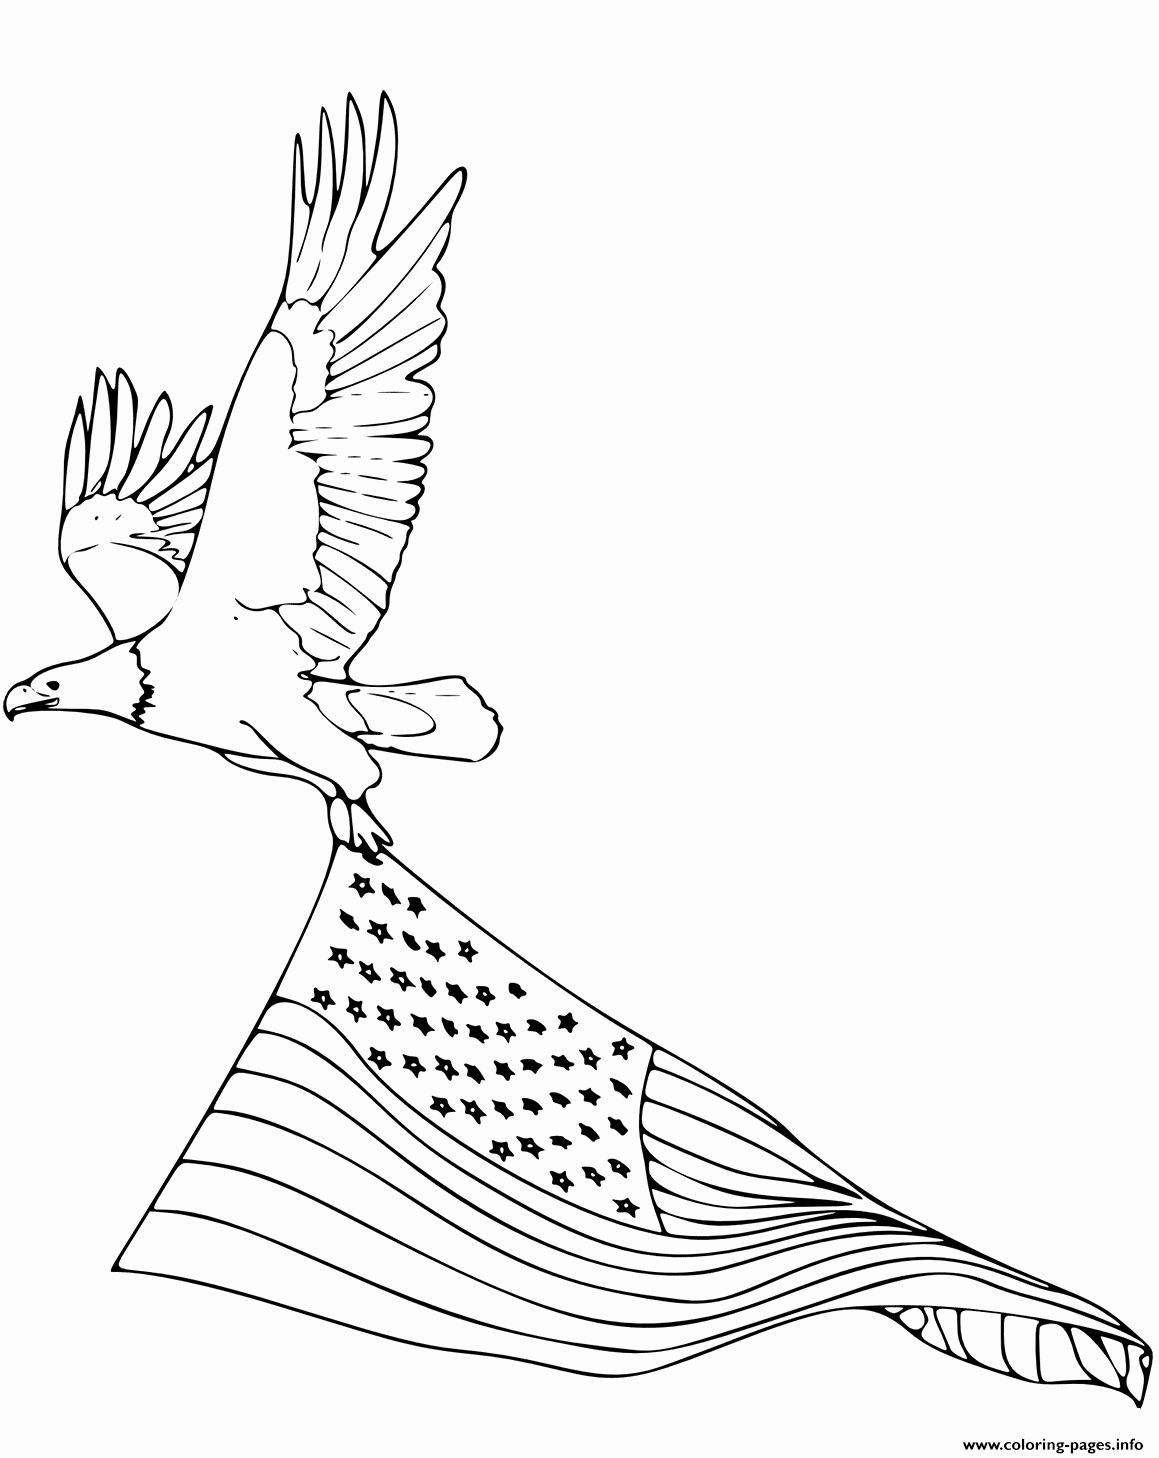 President Obama Coloring Page Luxury Print Bald Eagle Carrying American Flag Colori Flag Coloring Pages American Flag Coloring Page Memorial Day Coloring Pages